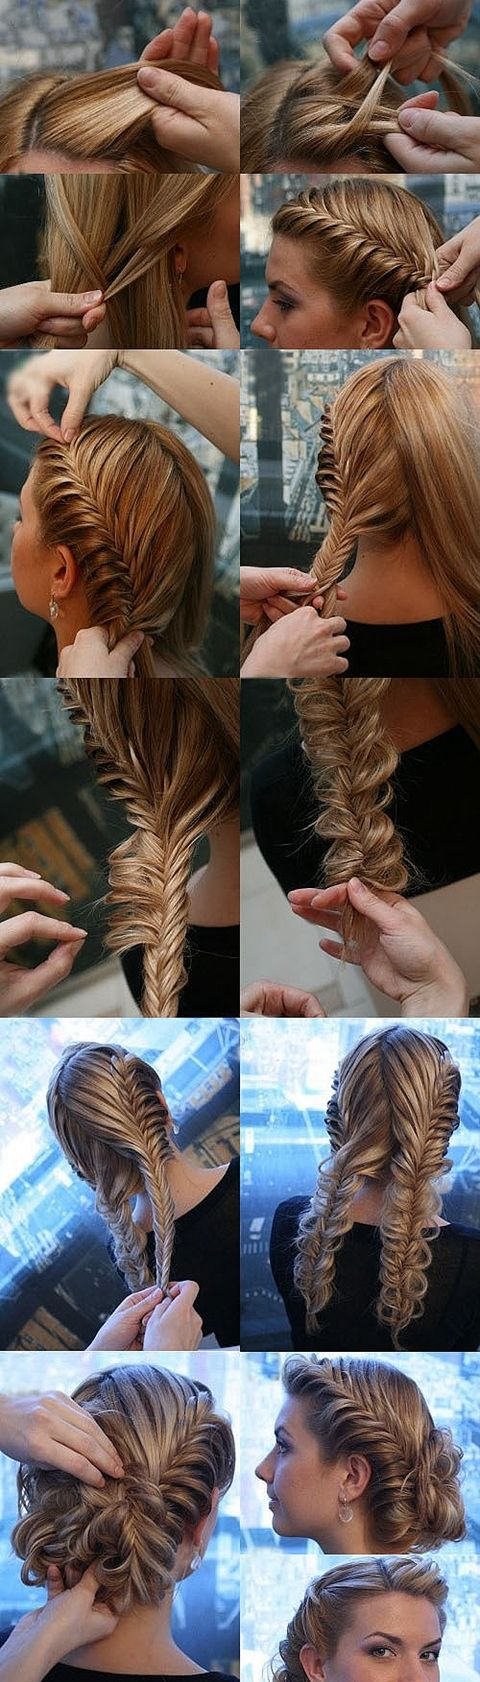 long hair styles for women.   WOW!  I'm in LOVE with this!  It looks really hard!